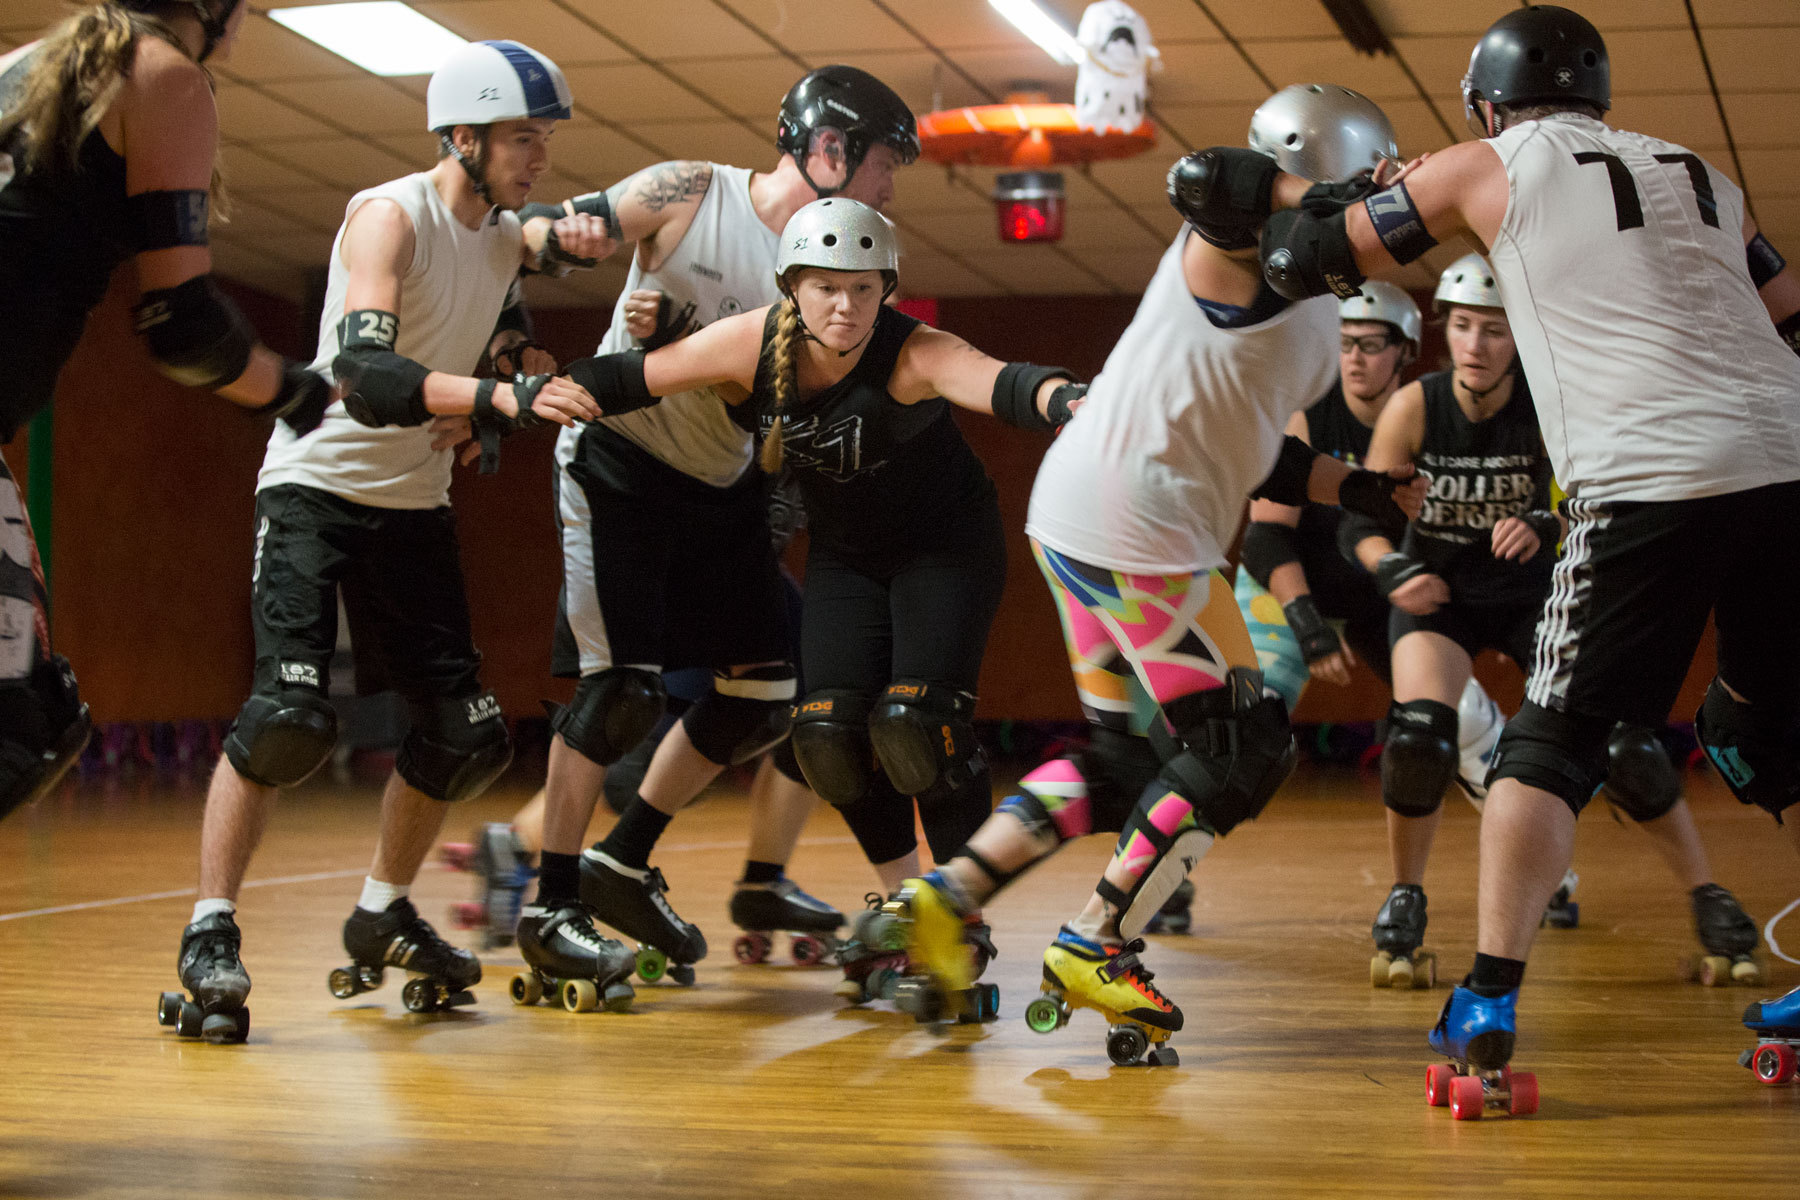 <p>Denver Roller Derby players from the Mile High Club team scrimmage with a male team ahead of their run at the international championships in New Orleans in early November, at The Wagon Wheel roller rink, Oct. 23, 2018.</p>